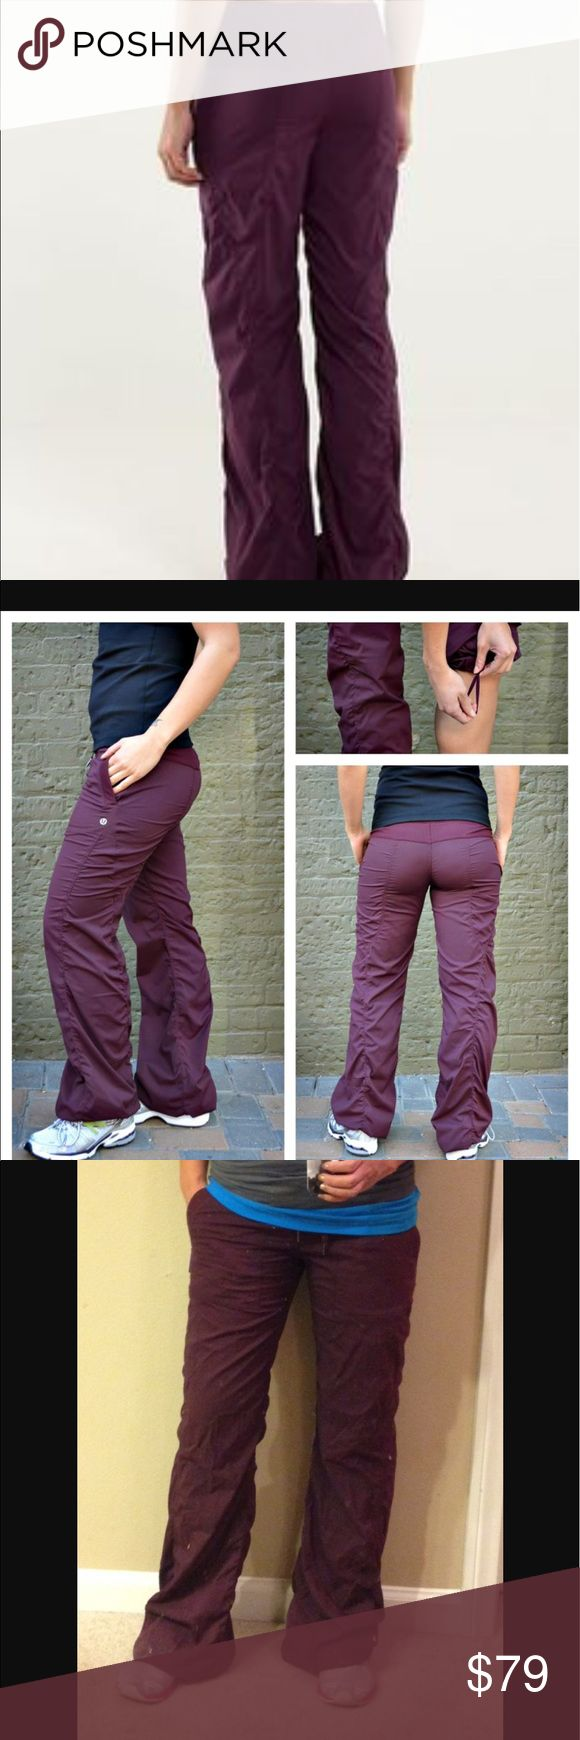 VEUC Lululemon Dance Studio Pants II Bordeaux 2 NO RIPS! NO DRAGS ON THE BOTTOMS!  NO STAINS!  I have every color in the lined and unlined Dance Studio Pant II but trying to unclutter a bit. I never use these, just not my color. These are lined, which are my favorites as they make the pant look better in my opinion.   REASONABLE OFFERS WELCOME. NO LOW BALL OFFERS PLEASE. lululemon athletica Pants Track Pants & Joggers